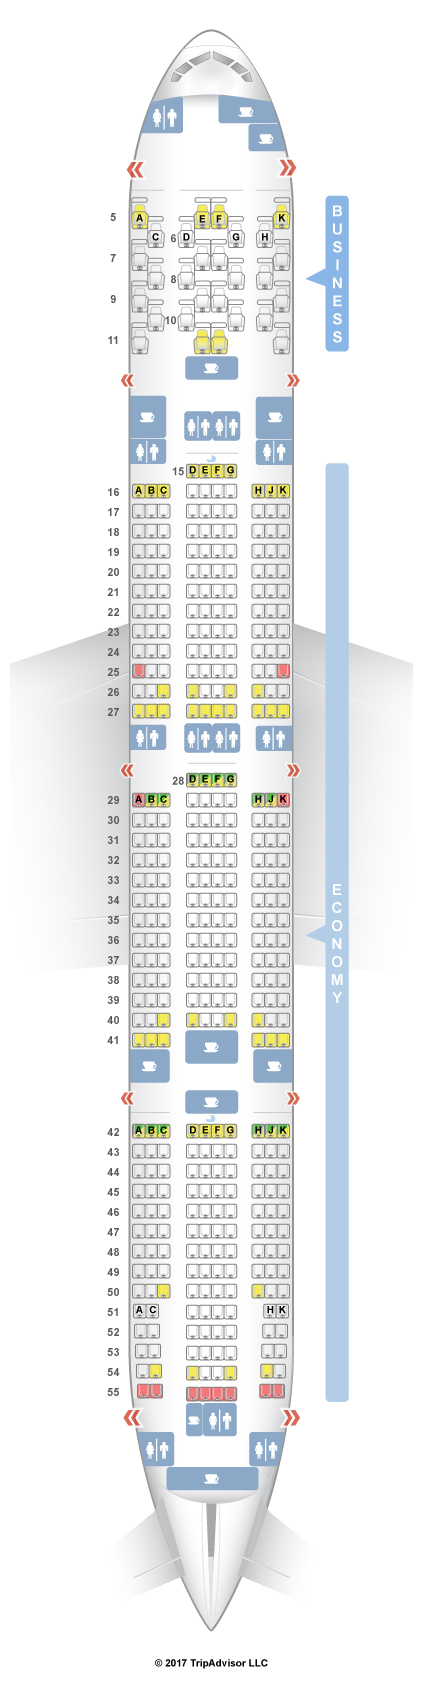 Cathay Pacific Seat Chart Cablestreamco - Us airways a321 seat map